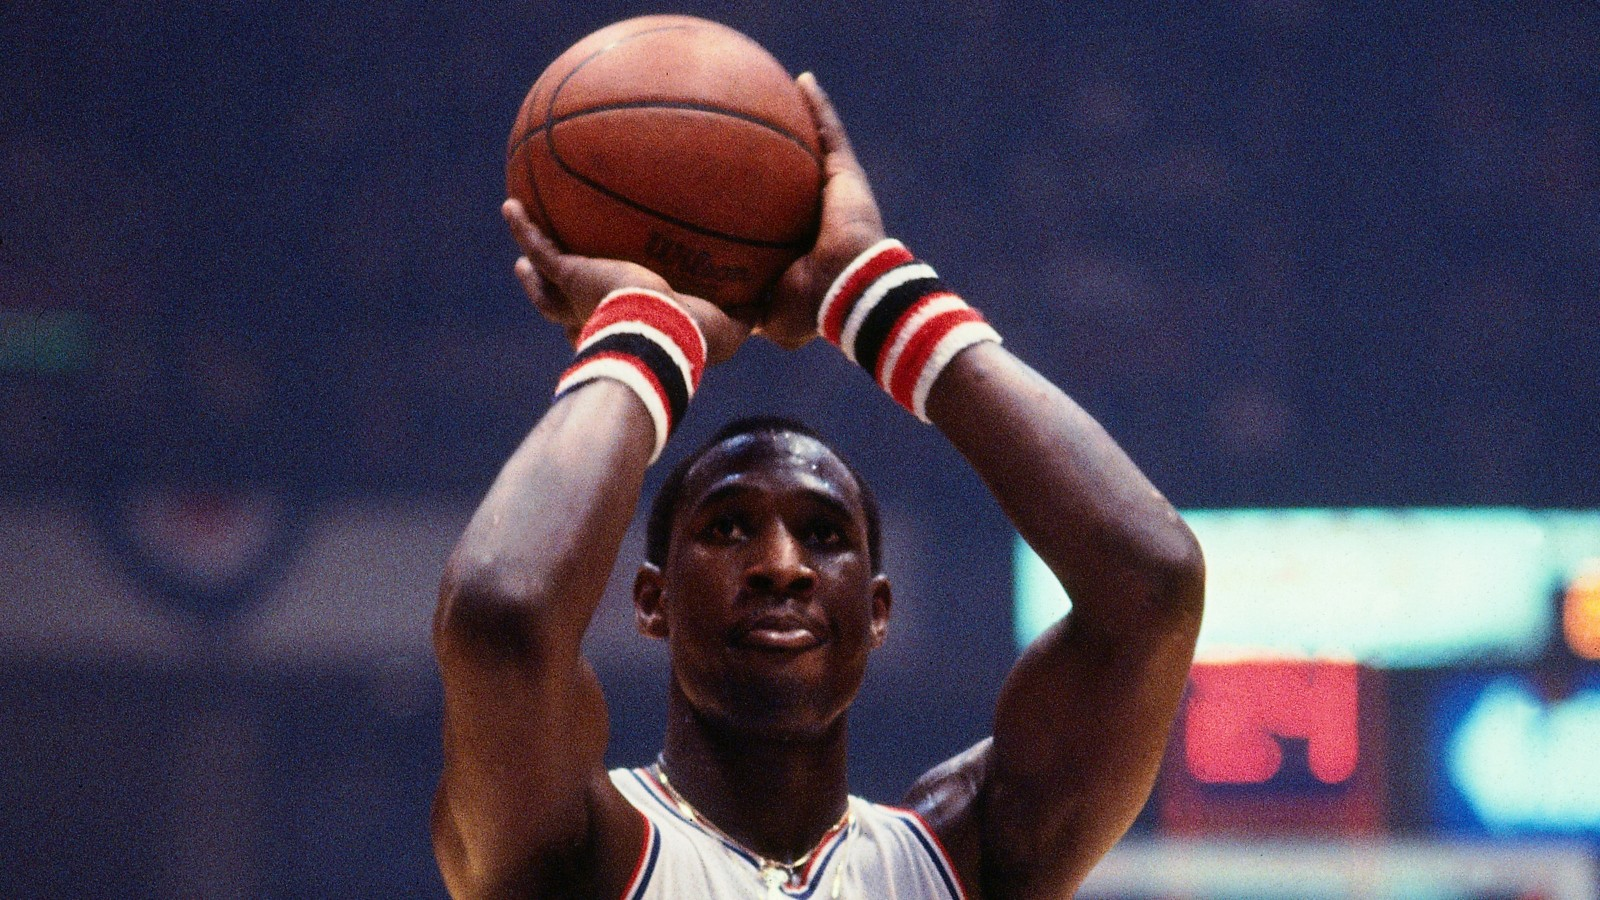 PHILADELPHIA - CIRCA 1980: Darryl Dawkins #53 of the Philadelphia 76ers shoots a foul shot during a game played circa 1980 at the Spectrum in Philadelphia, Pennsylvania. NOTE TO USER: User expressly acknowledges and agrees that, by downloading and or using this photograph, User is consenting to the terms and conditions of the Getty Images License Agreement. Mandatory Copyright Notice: Copyright 1980 NBAE (Photo by Ron Koch/NBAE via Getty Images)